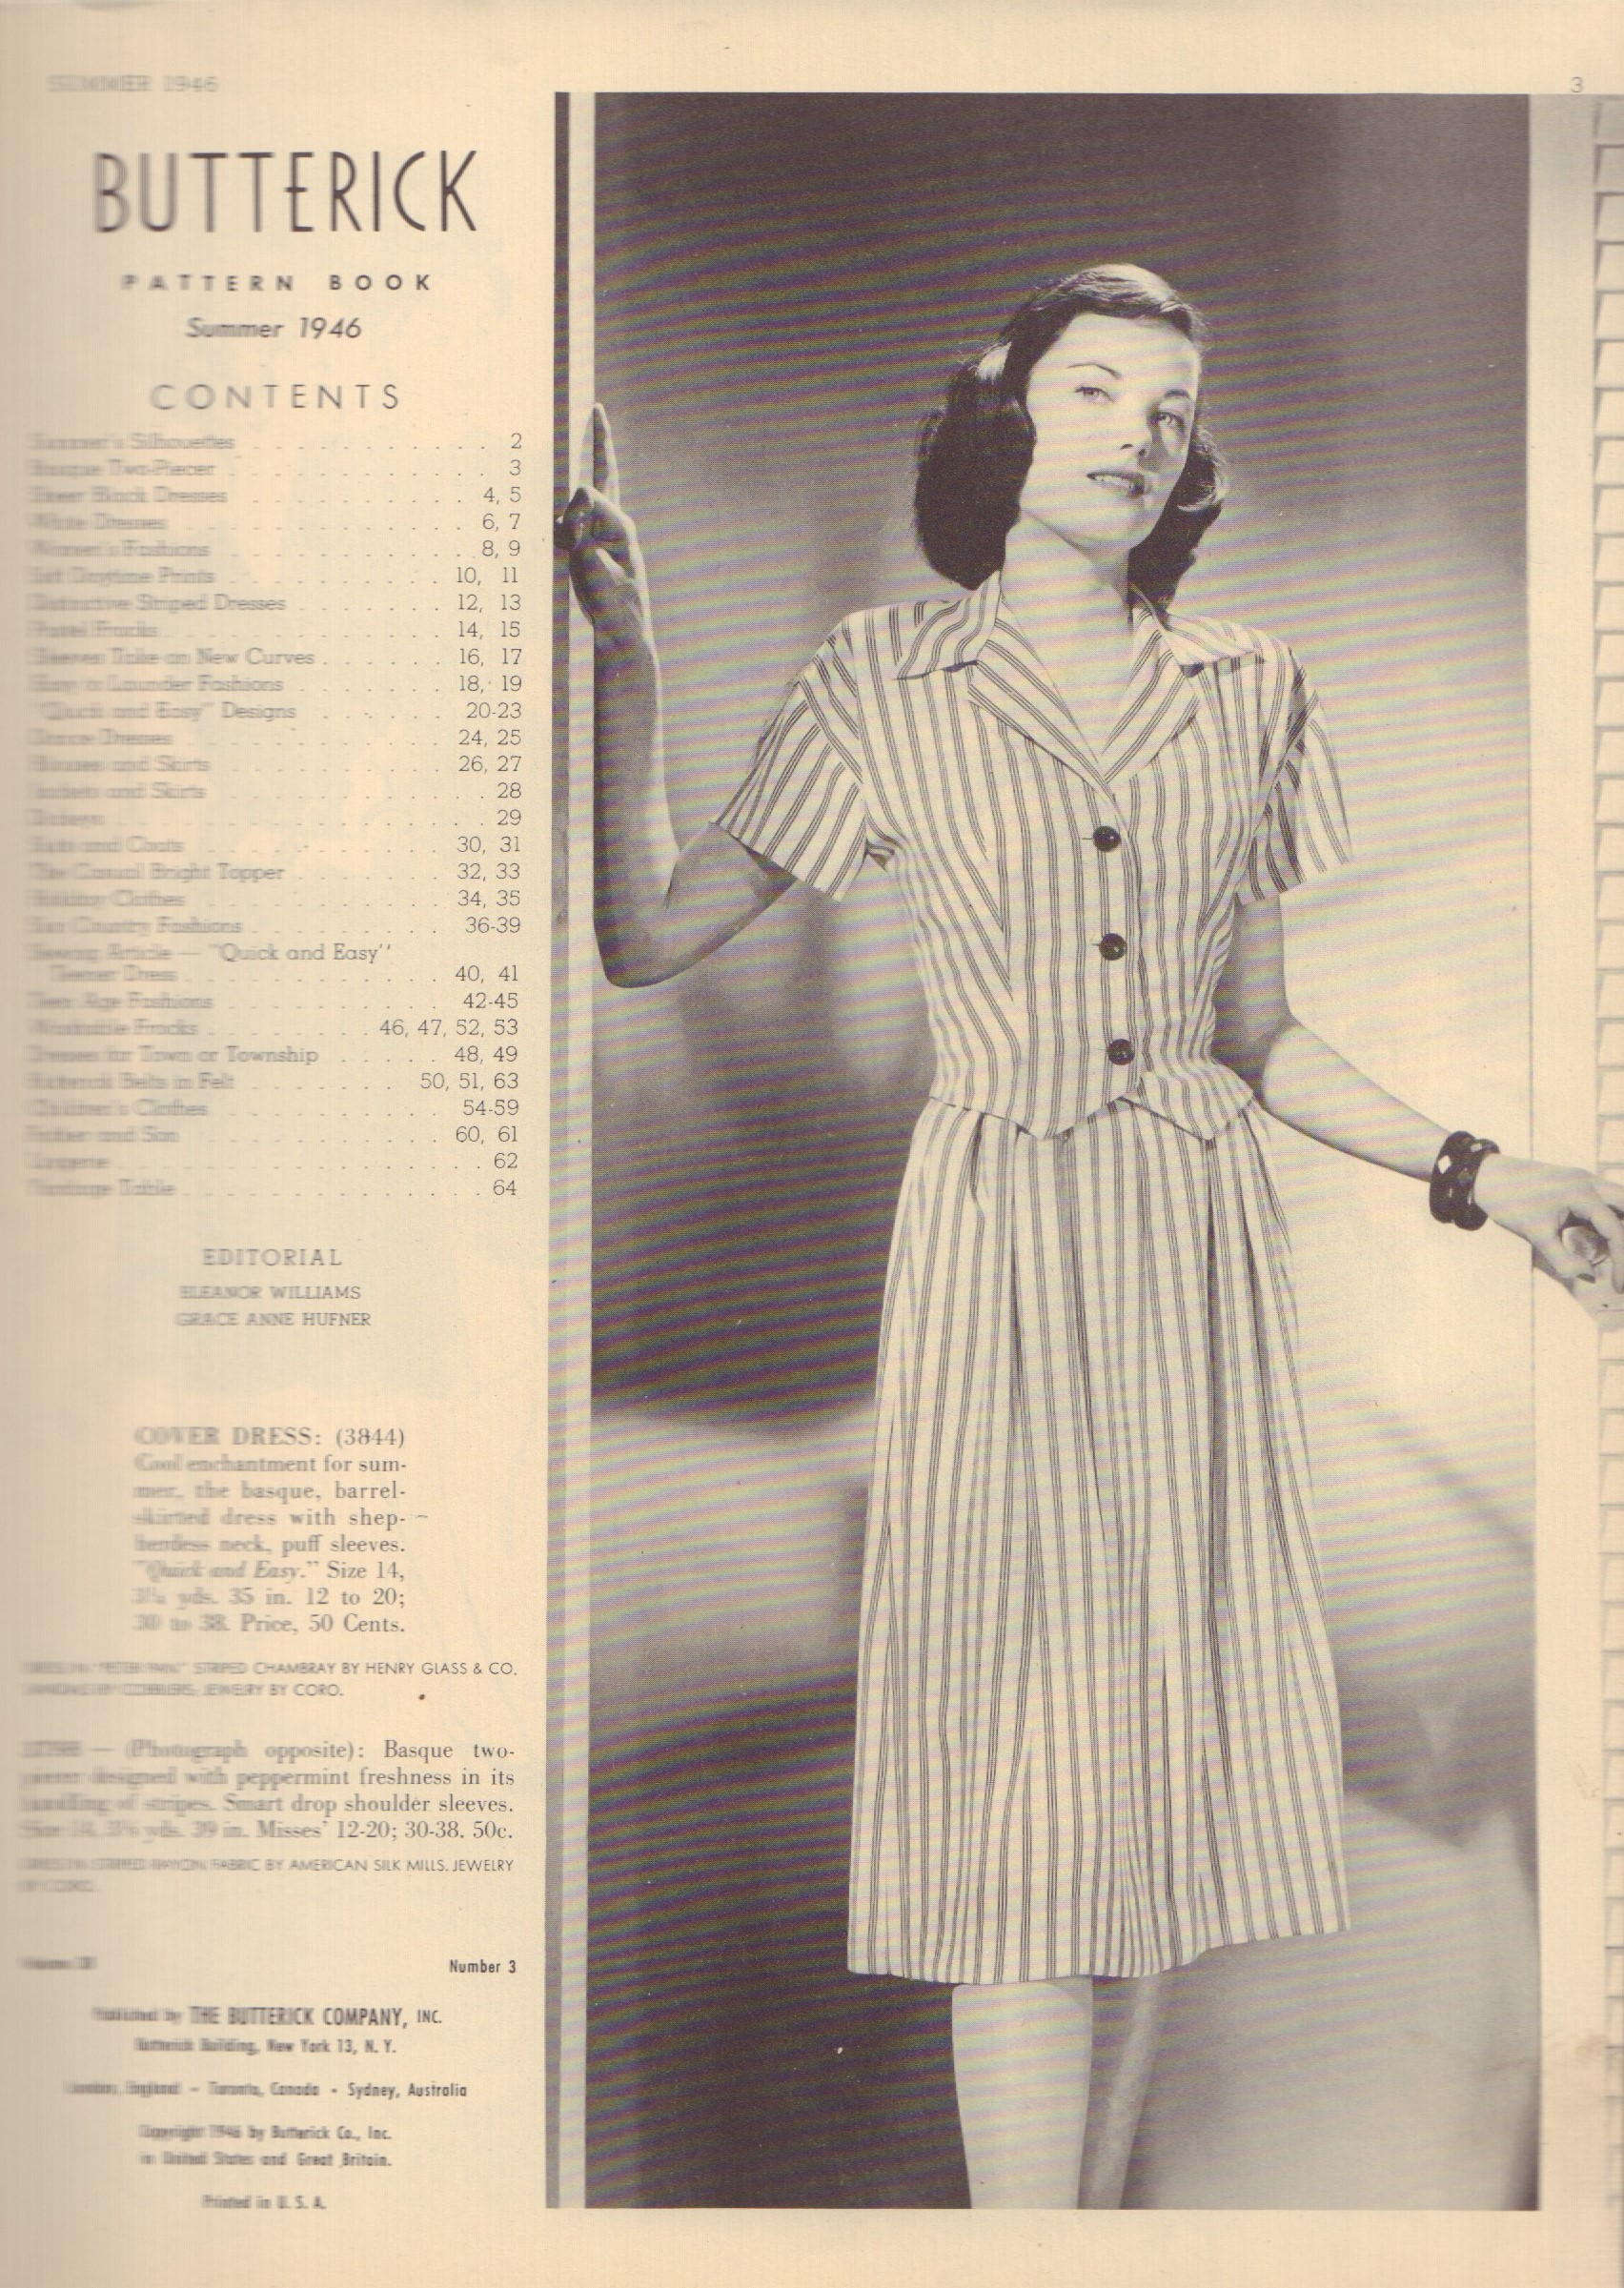 Image for Butterick Pattern Book - Summer 1946 (Volume 38, Number 3)